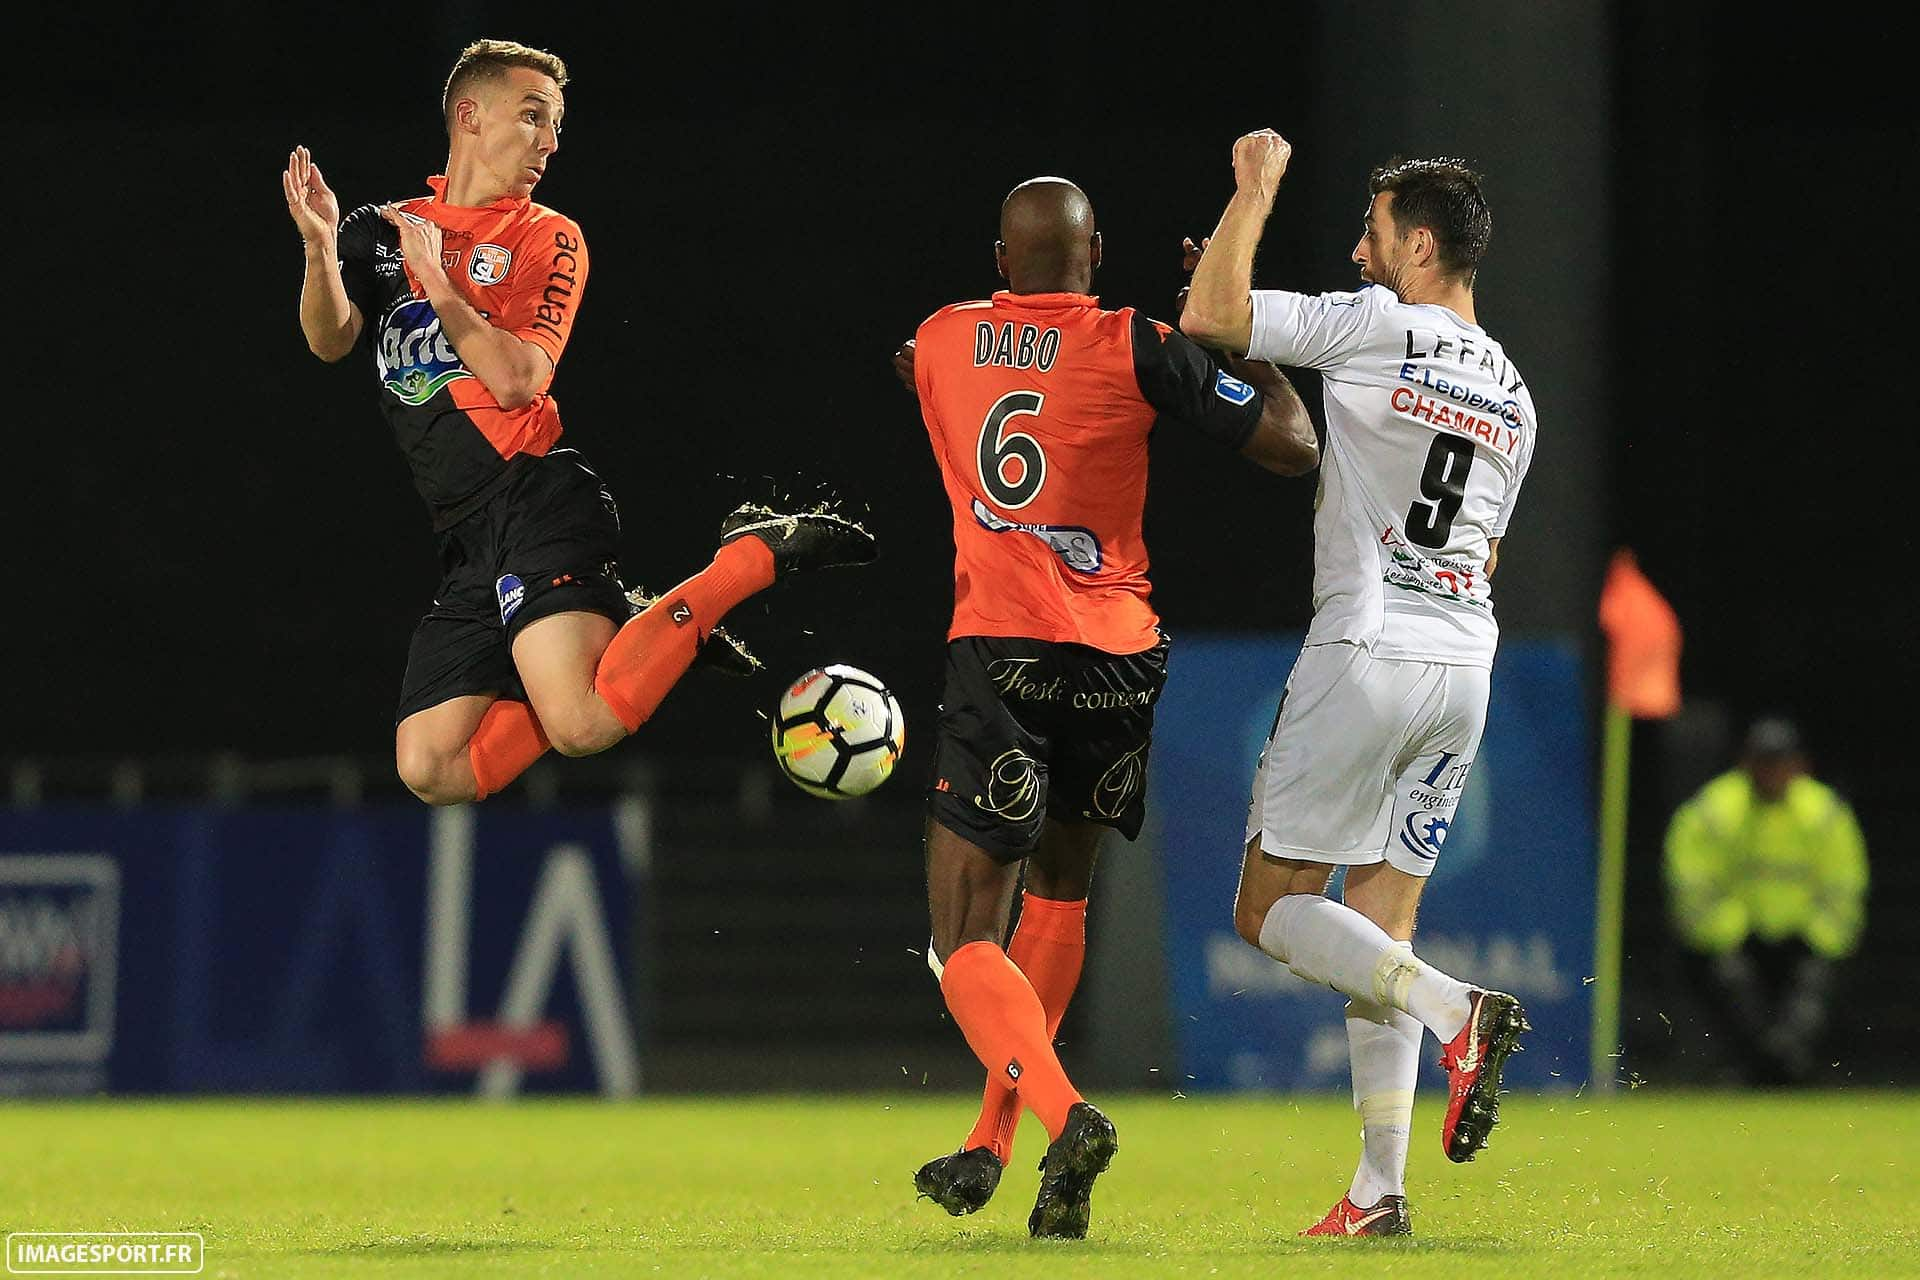 Kevin PERROT (Stade Lavallois) / Diaguely DABO (Stade Lavallois) / Kevin LEFAIX (FC Chambly Oise)